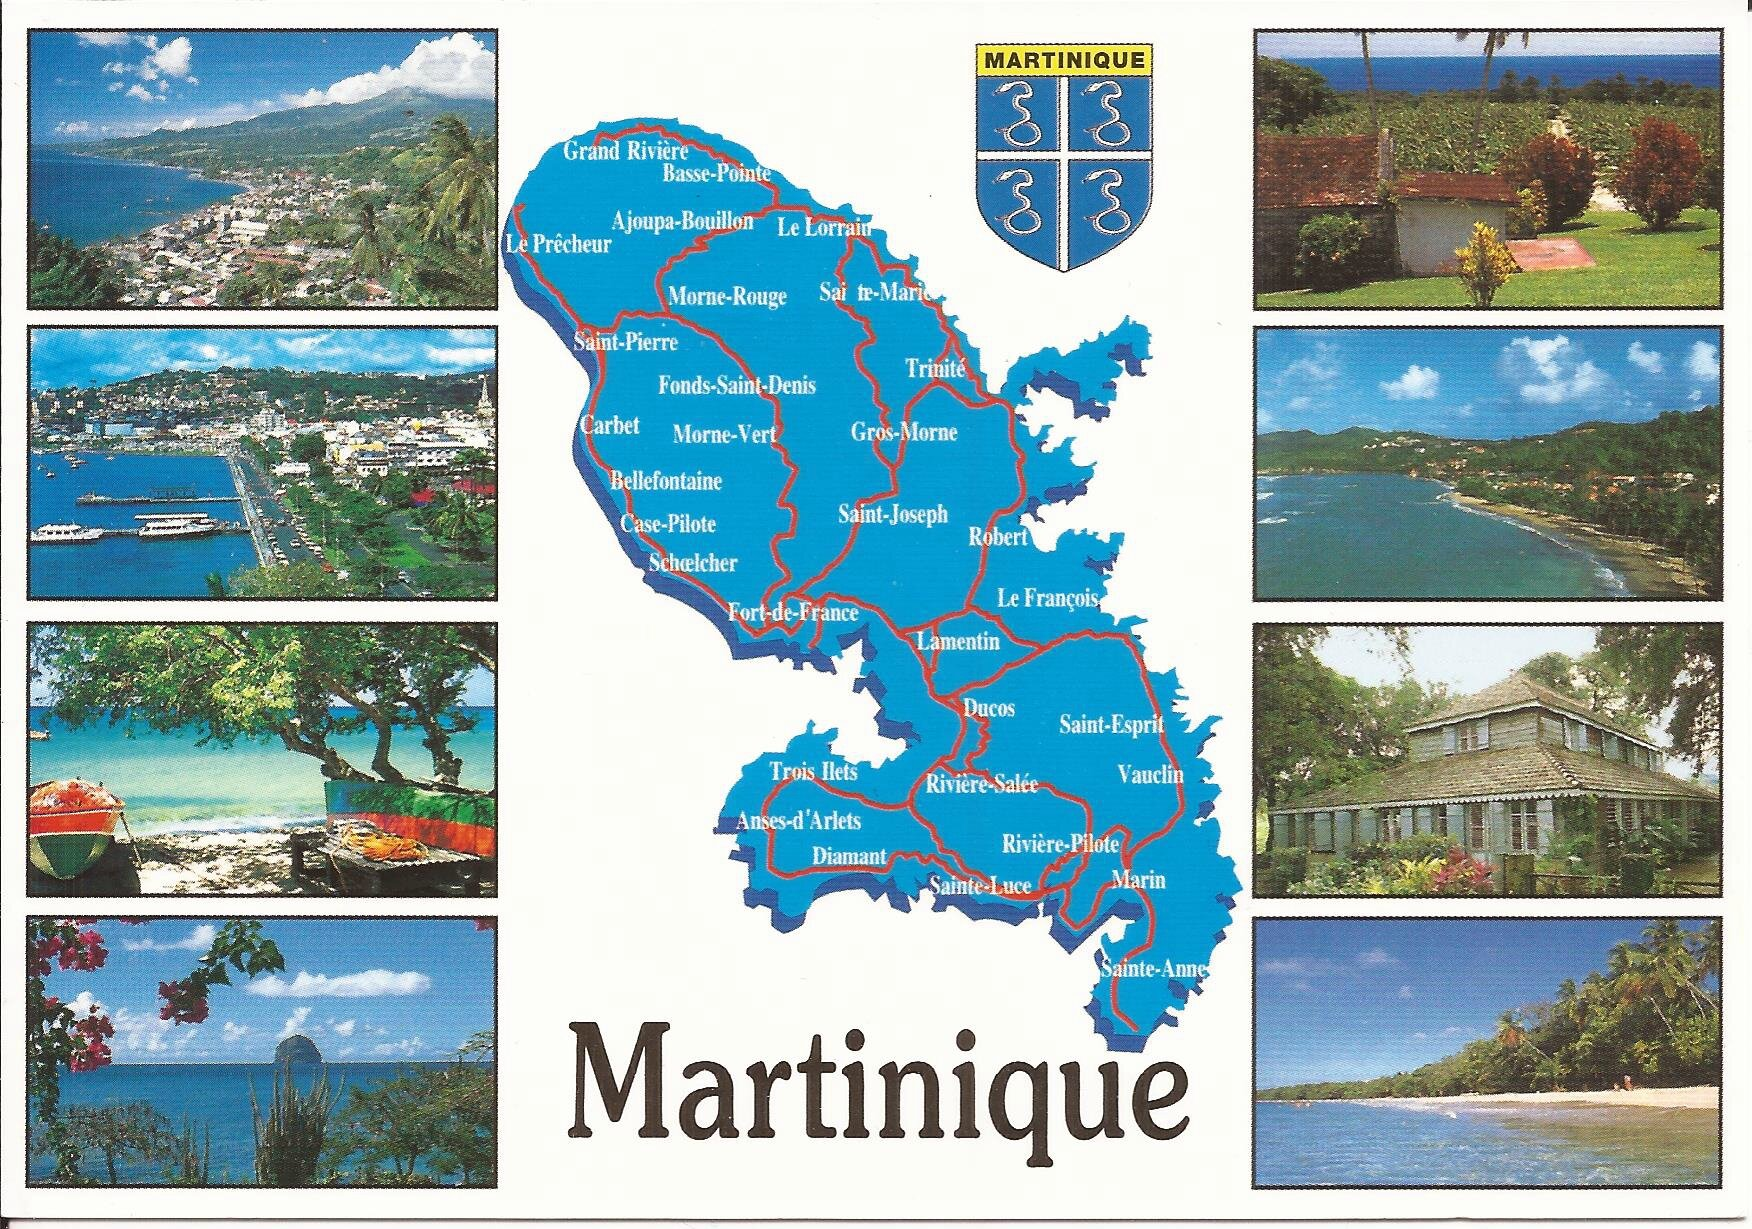 972 martinique'''''